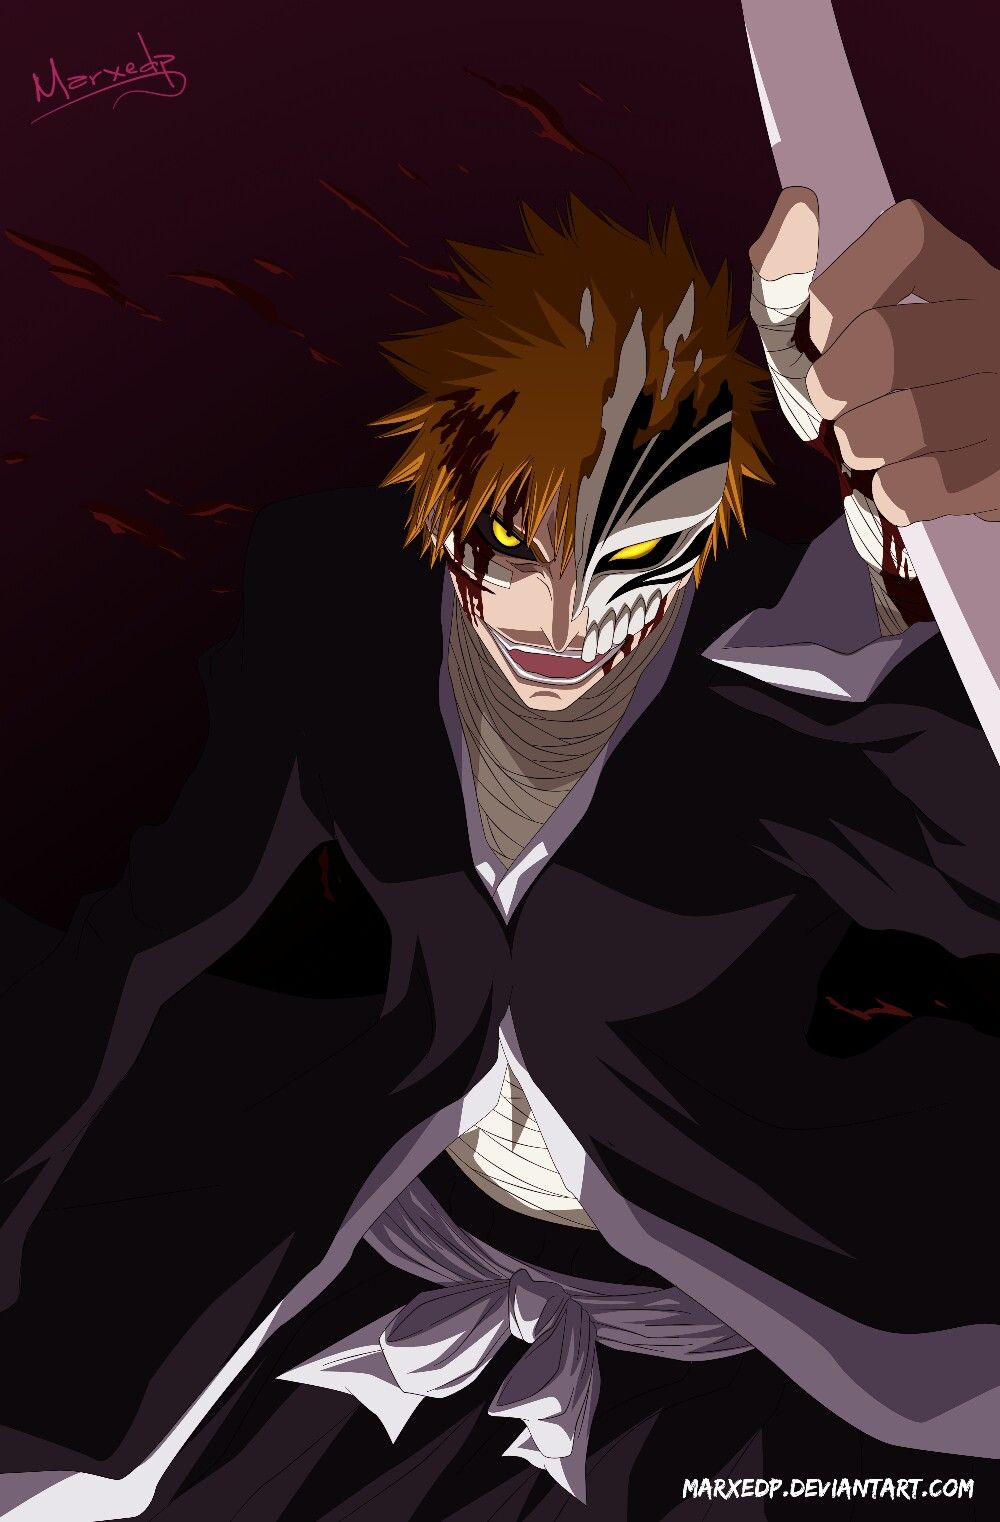 Pin de Ewil em Bleach Bleach personagens, Mangá bleach